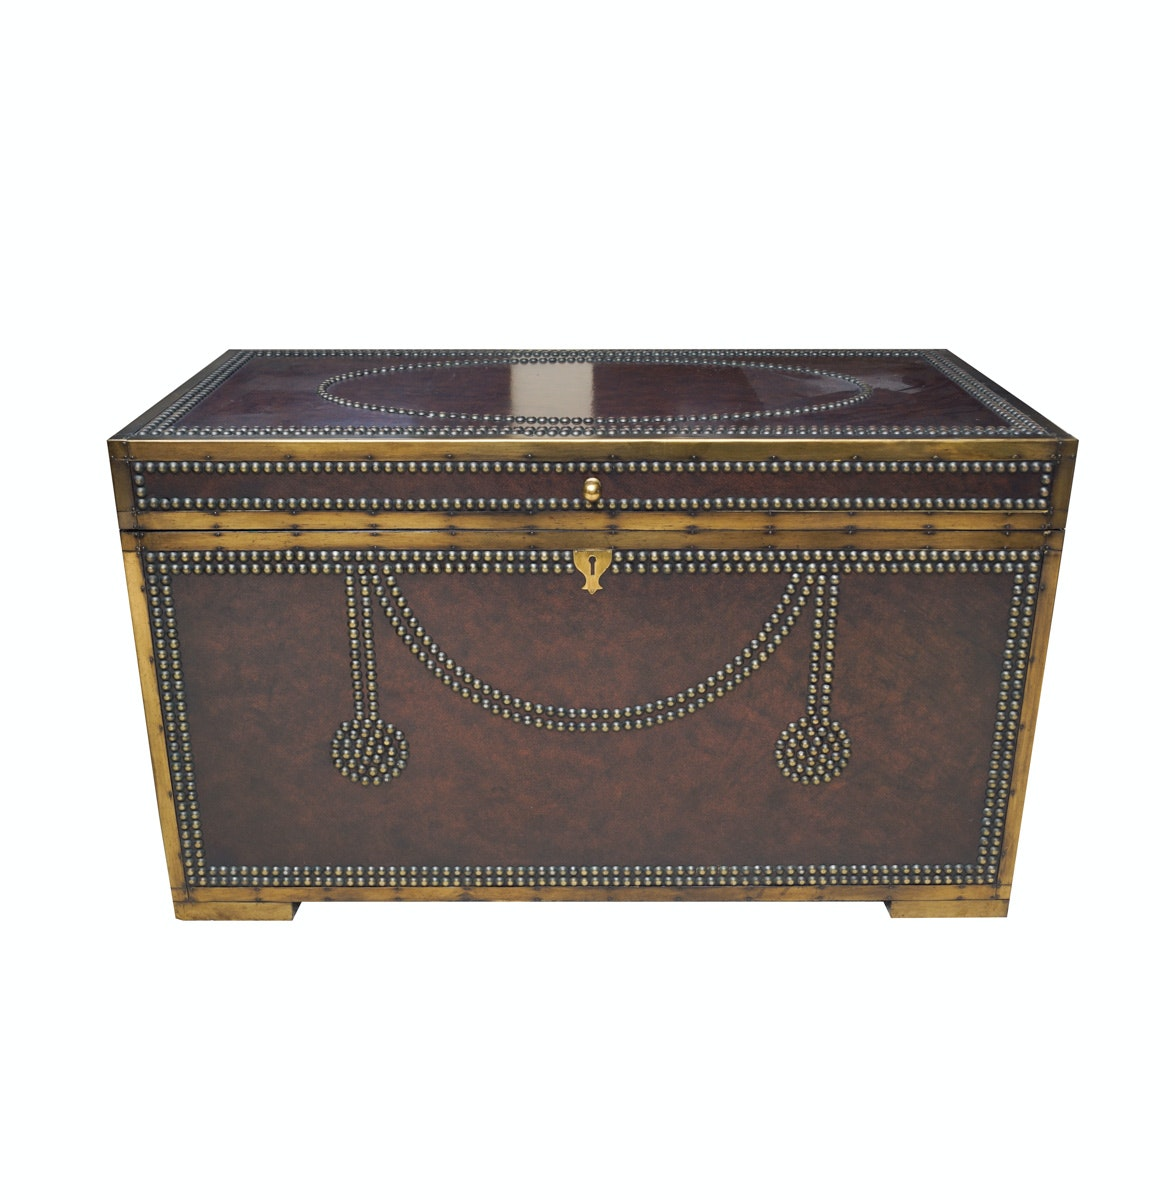 Maitland Smith Trunk